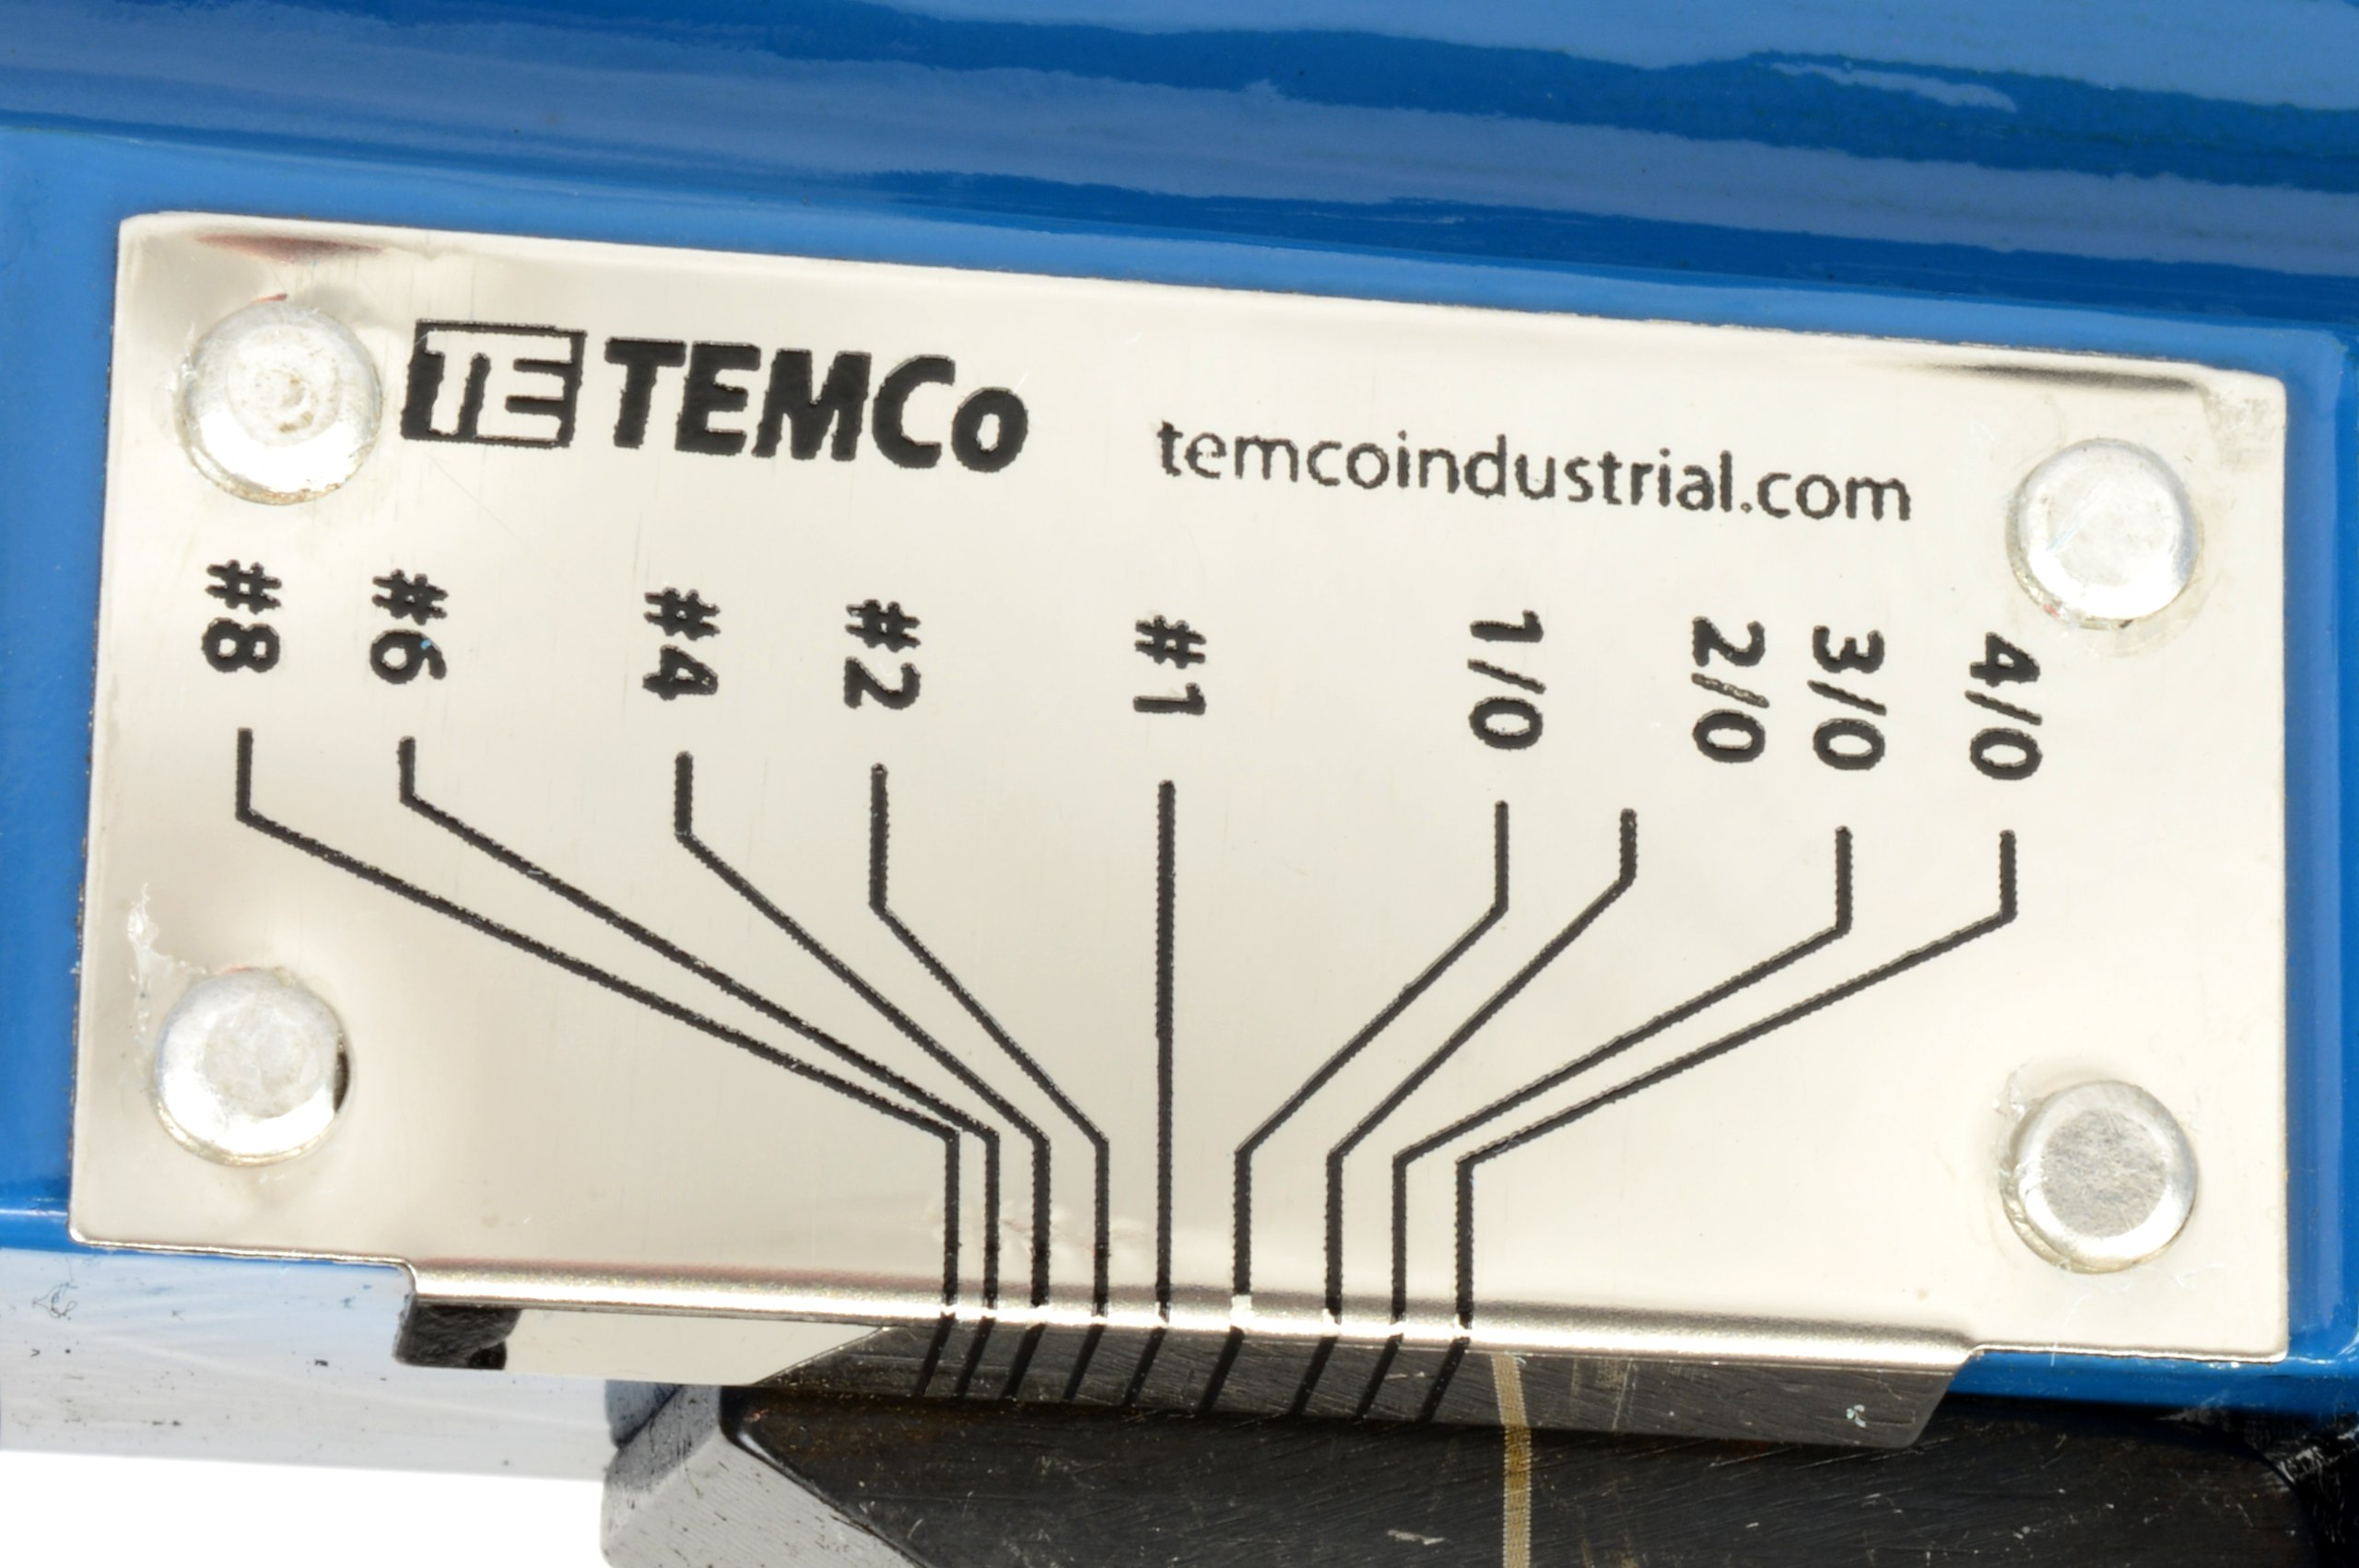 TEMCo Lug Crimper Tool TH0012-8 AWG - 0000 AWG(4/0) DIELESS Indent Electrical Battery Terminal Cable Wire 5 YEAR WARRANTY by Temco (Image #6)